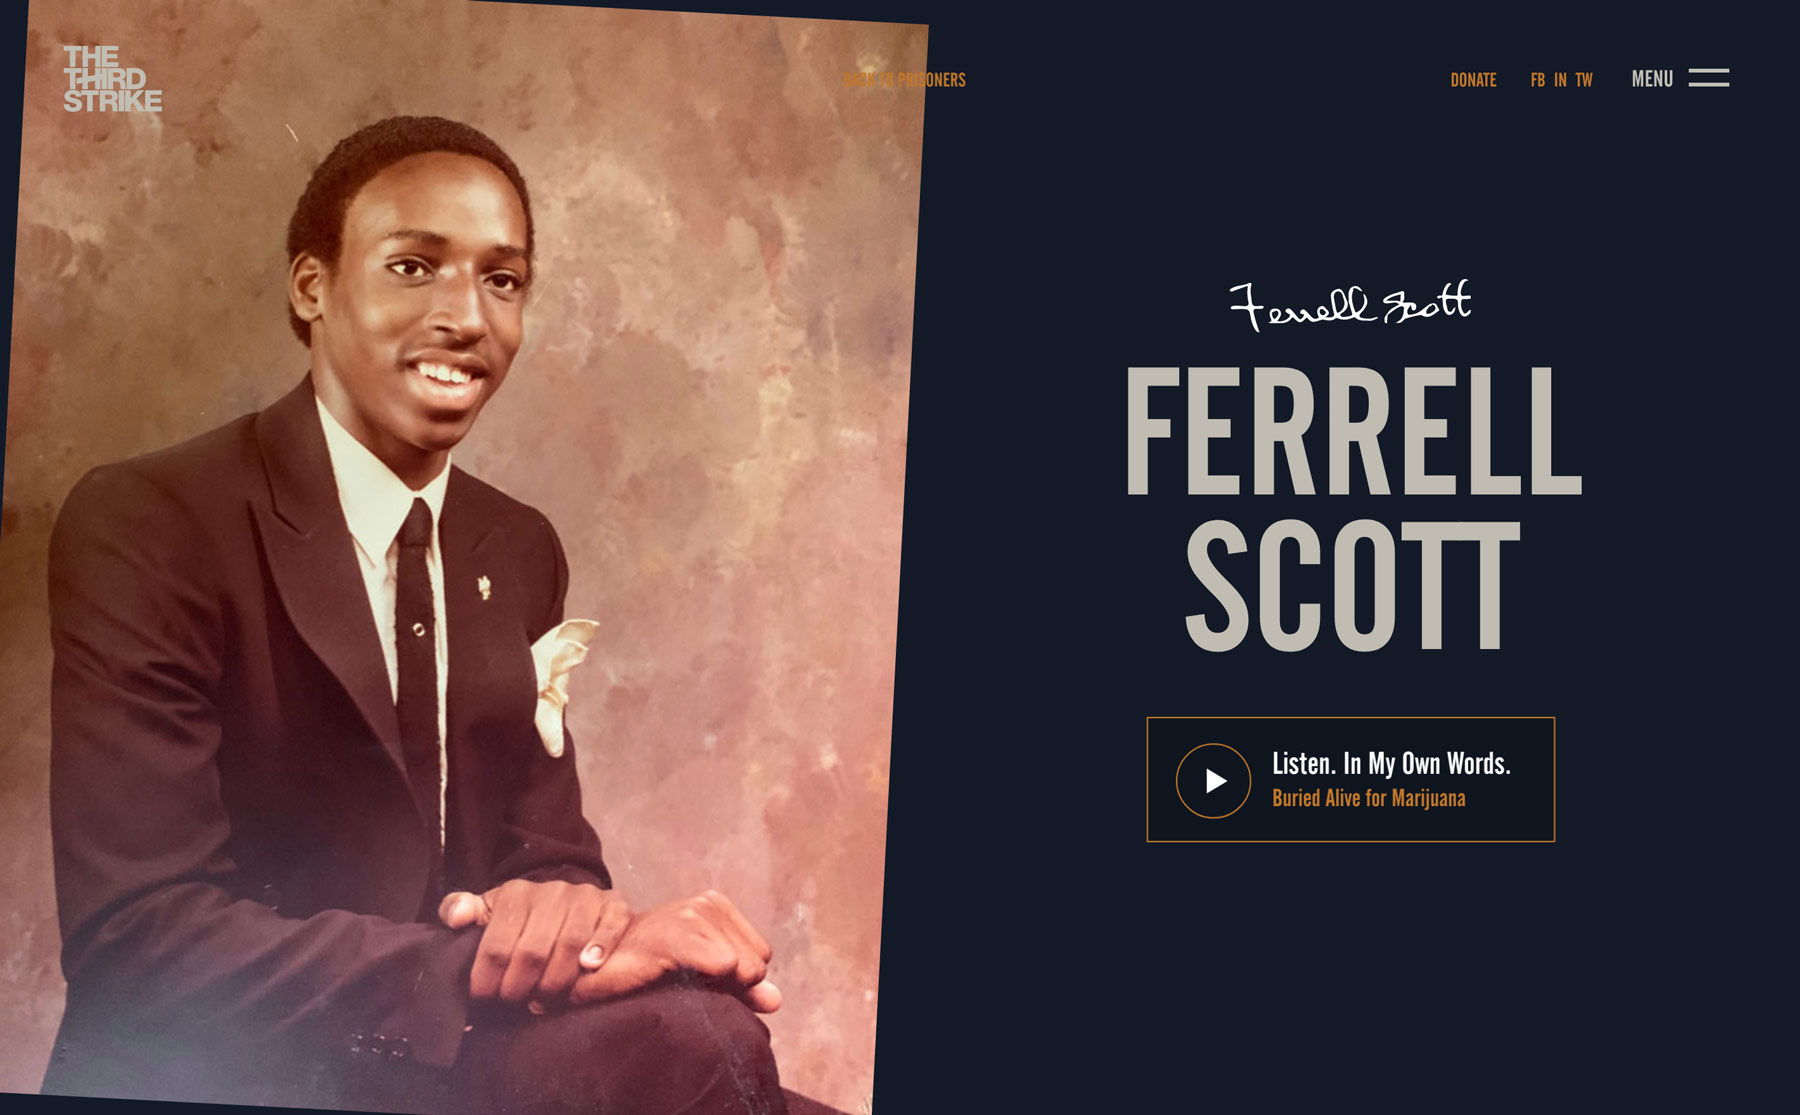 The Ferrell Scott story on the The Third Strike Campaign page